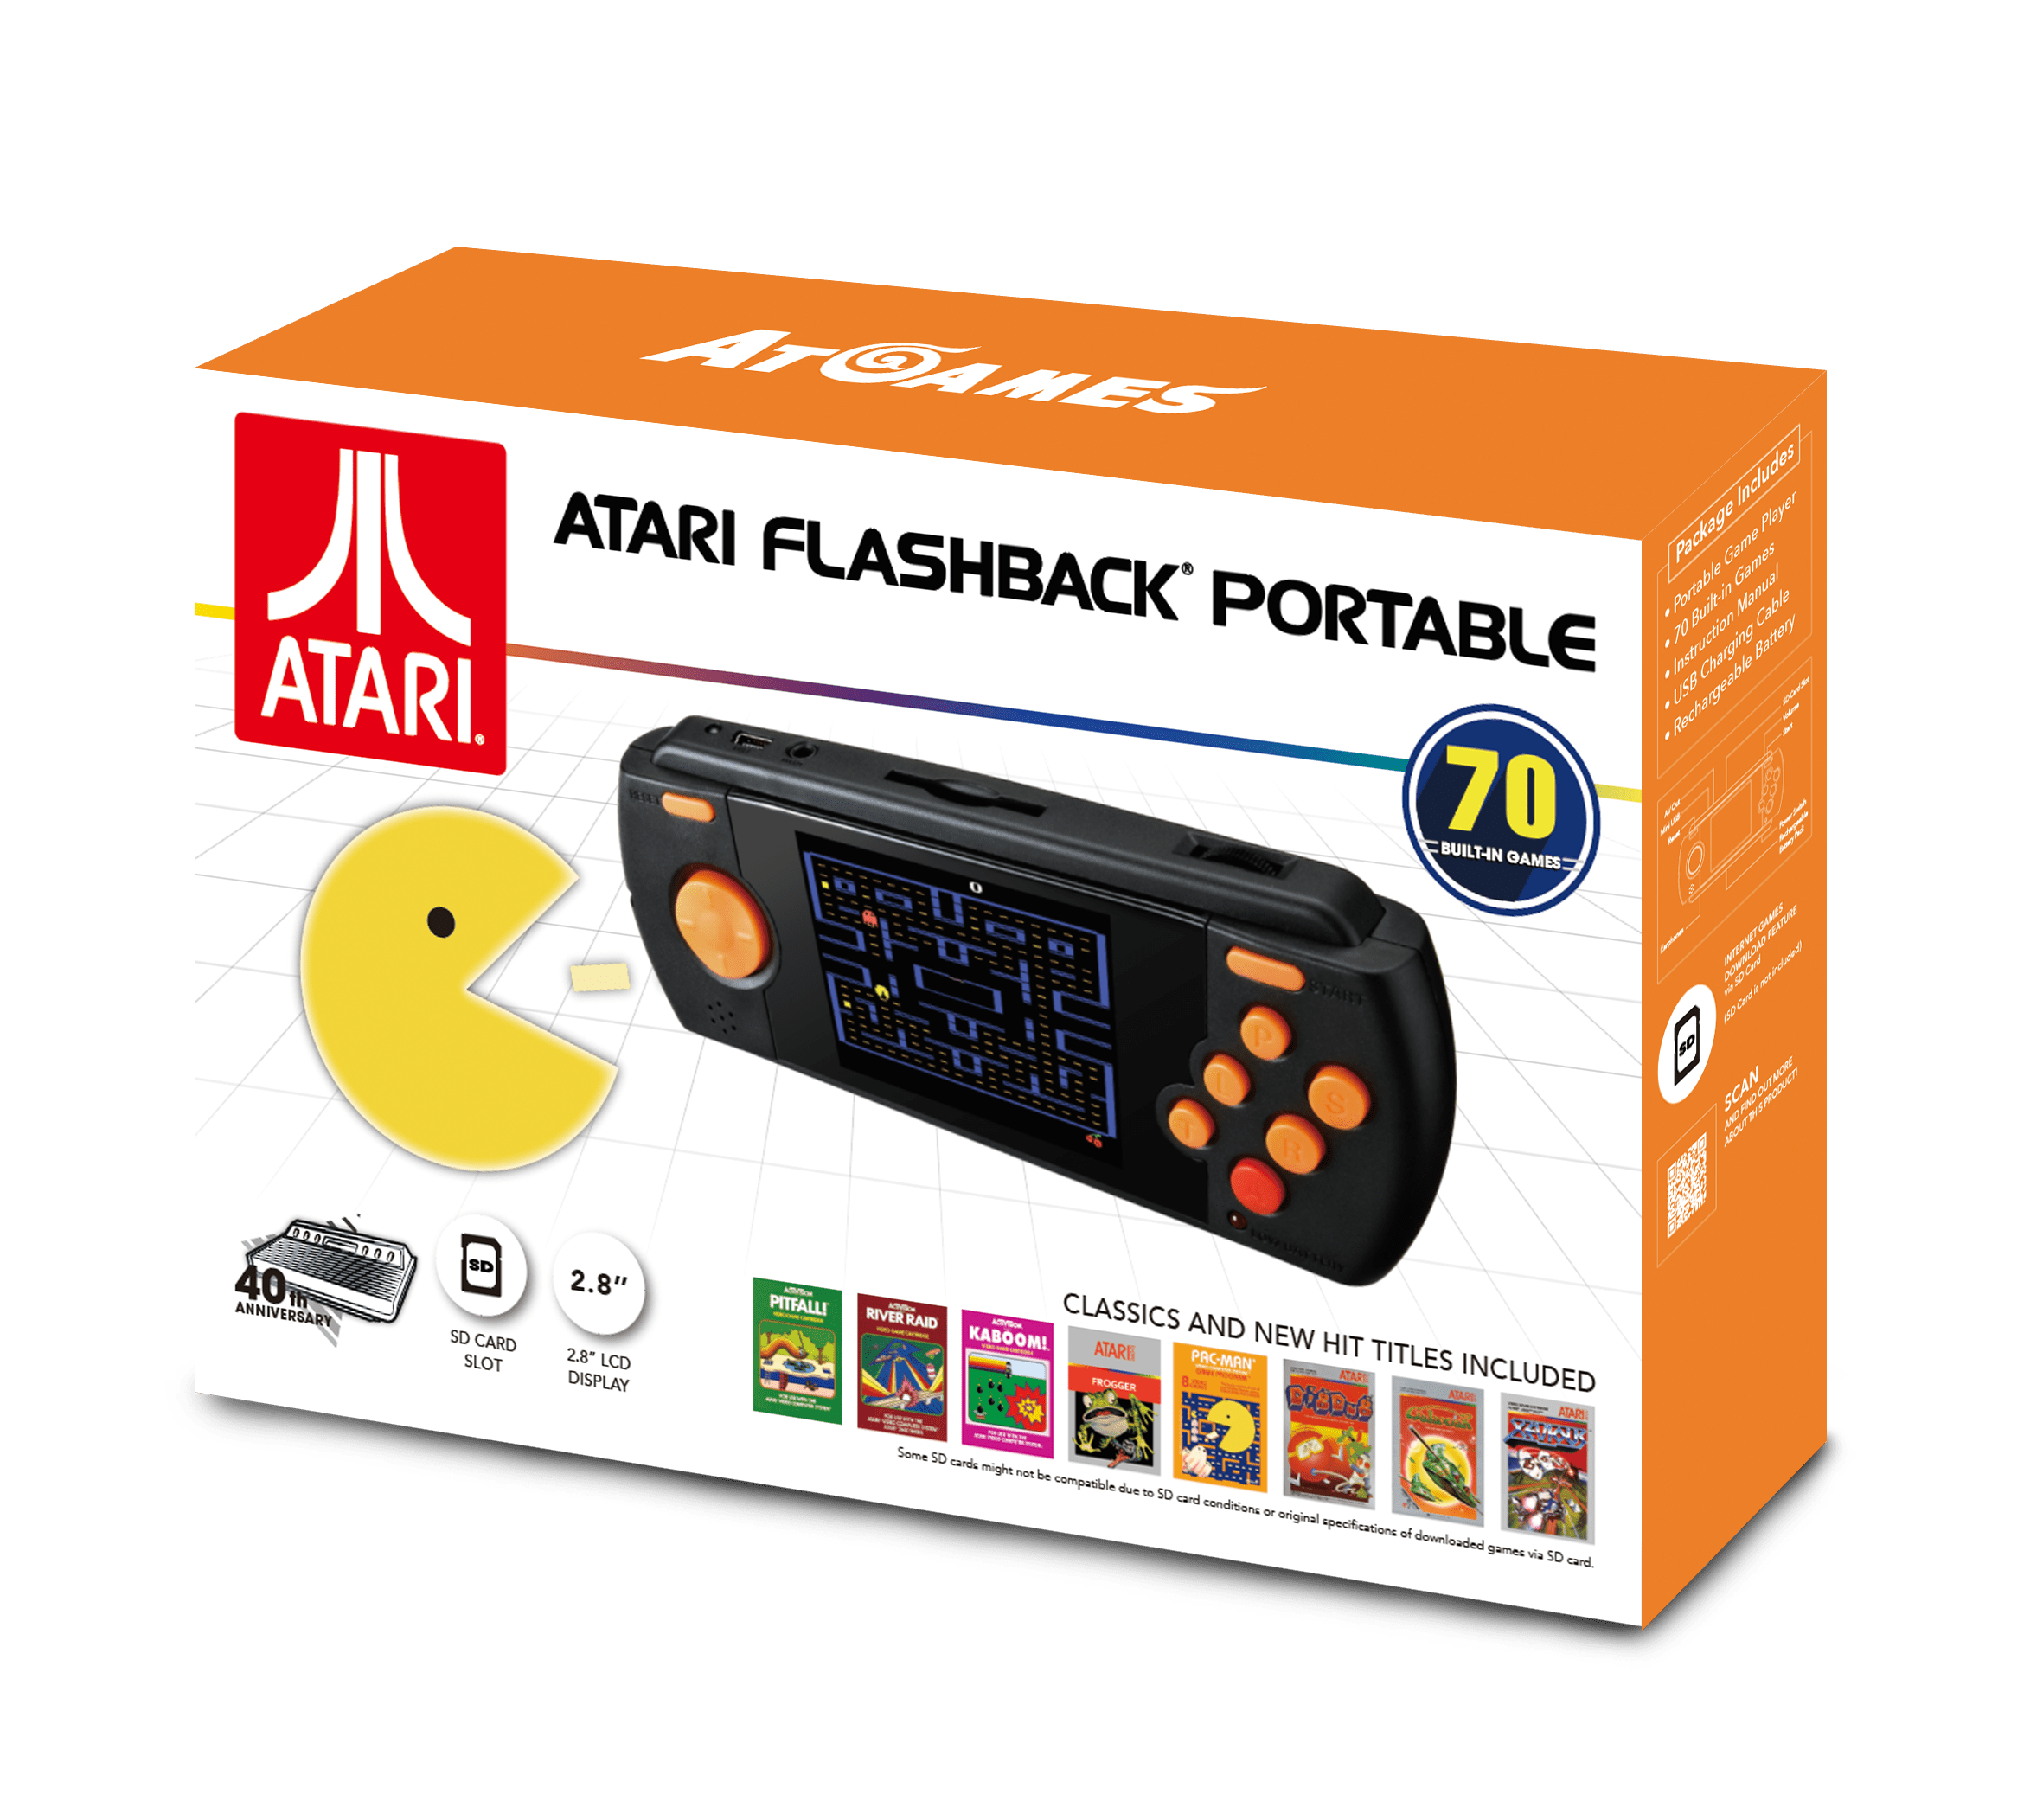 Atari Flashback Portable Game Player (2017): The Official Game List